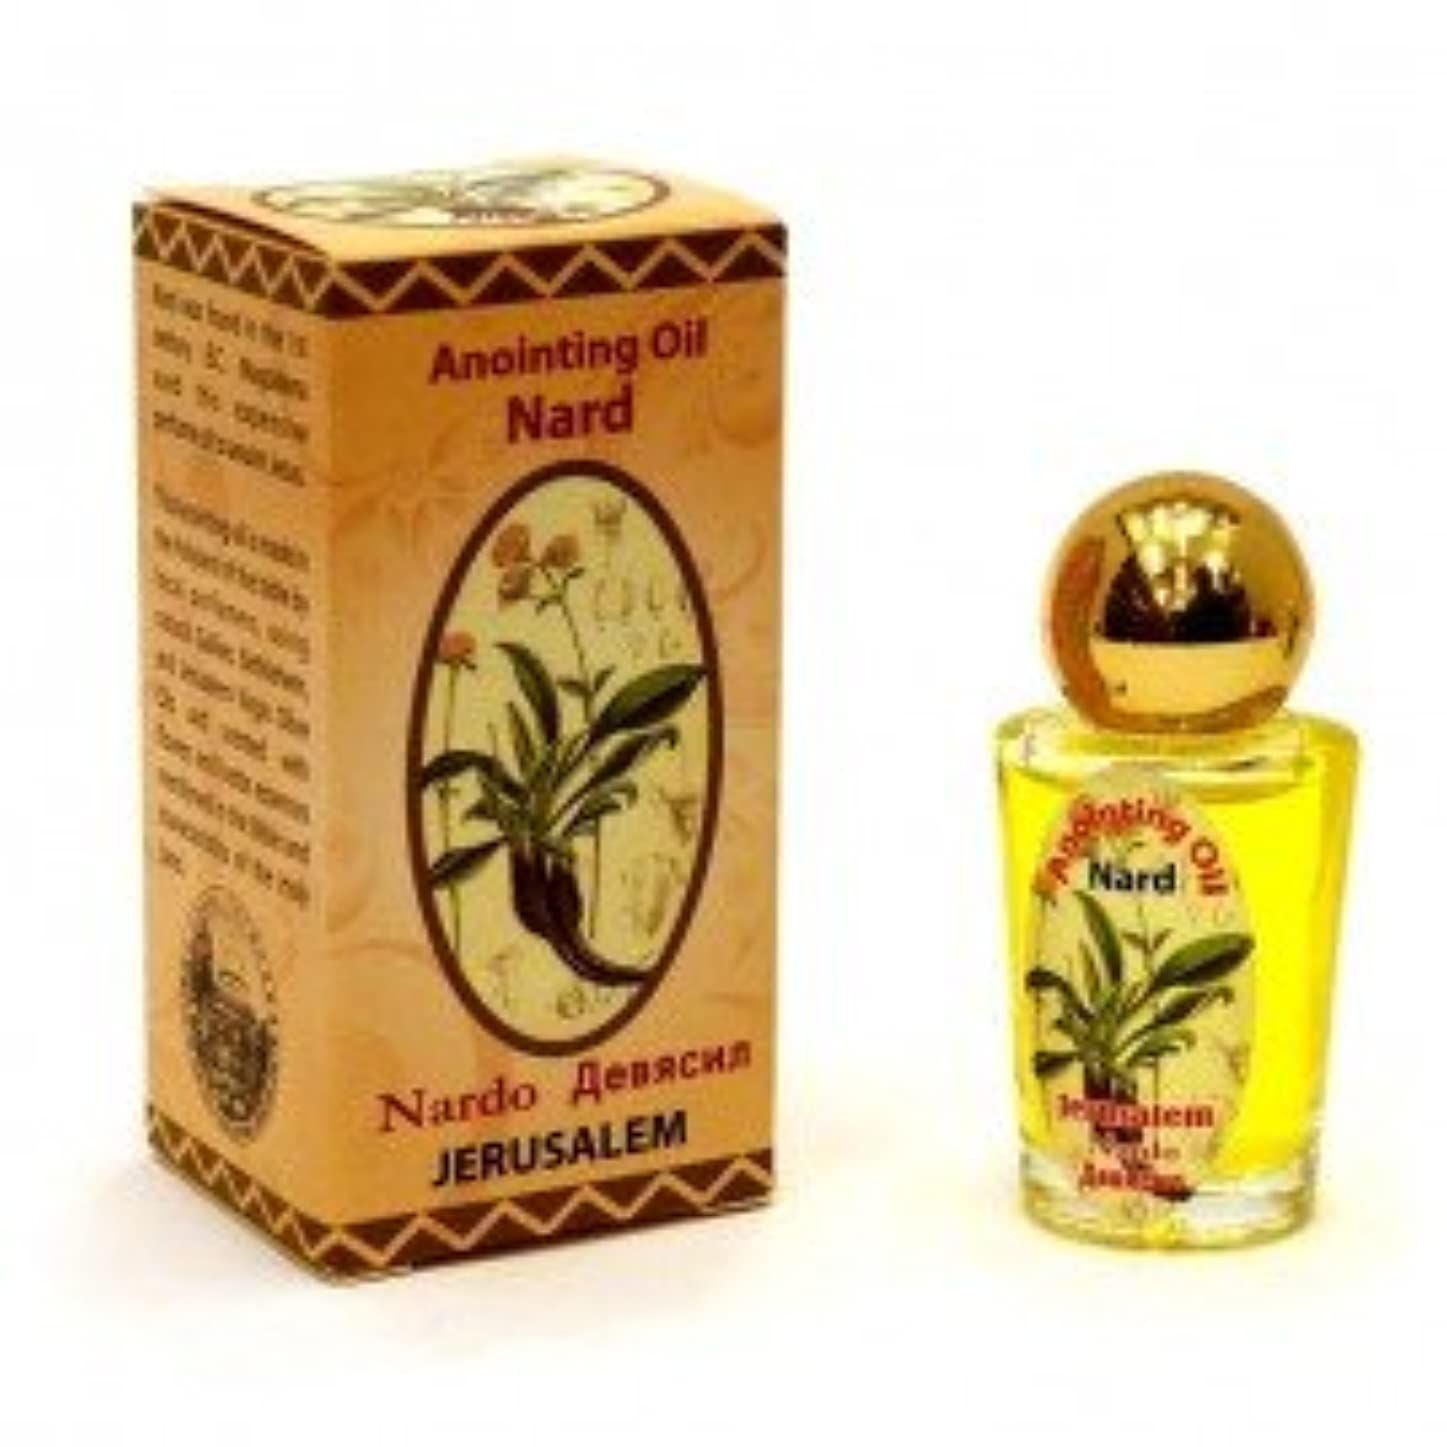 Holy Land Blessed Anointingオイル30 ml Biblical Fragrance Jerusalem byベツレヘムギフトTM